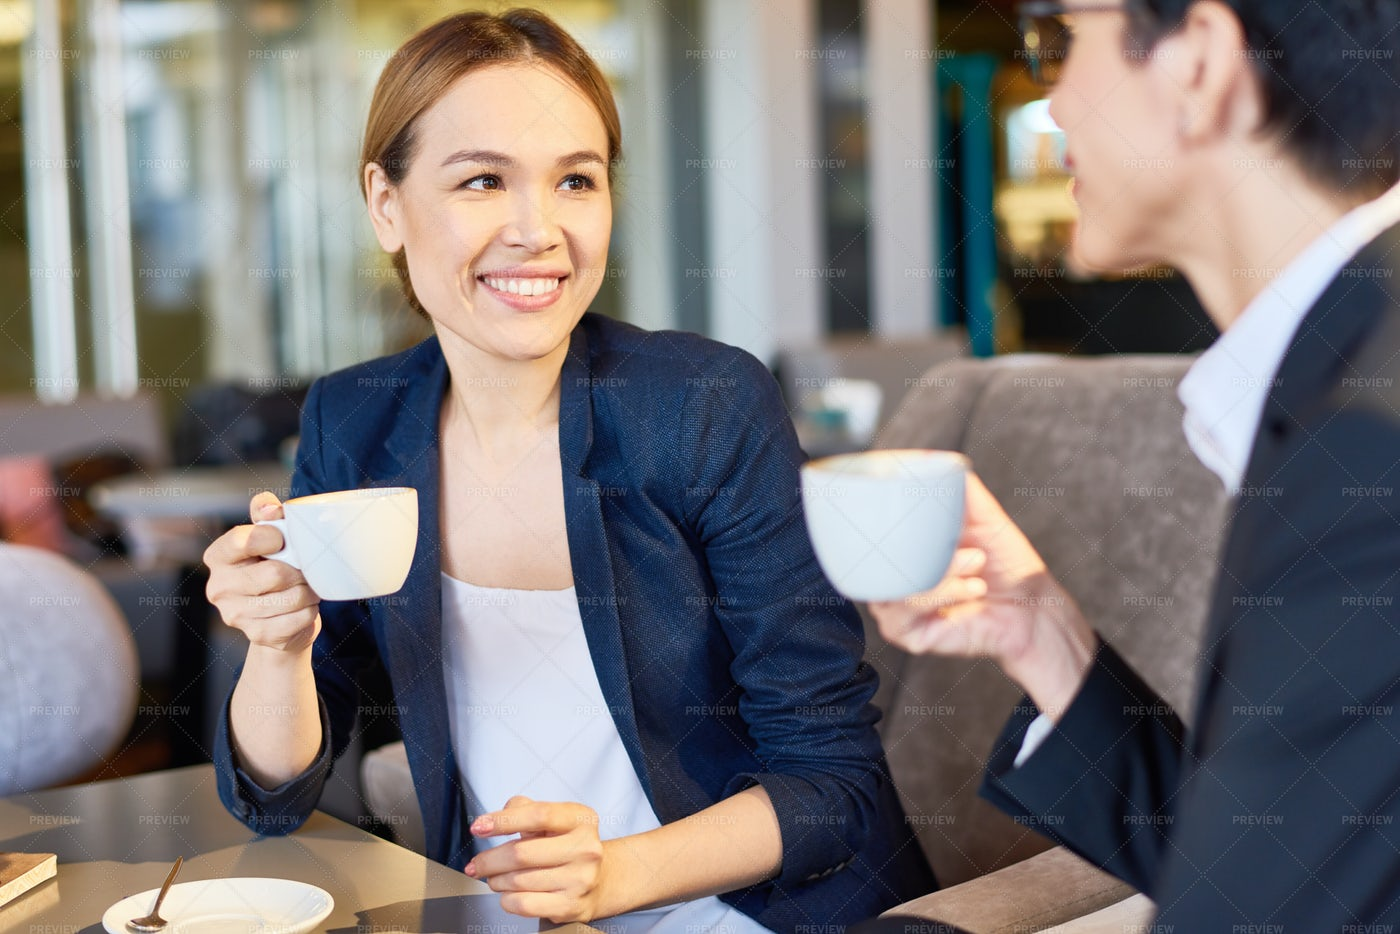 Chatting With Colleague At Coffee...: Stock Photos